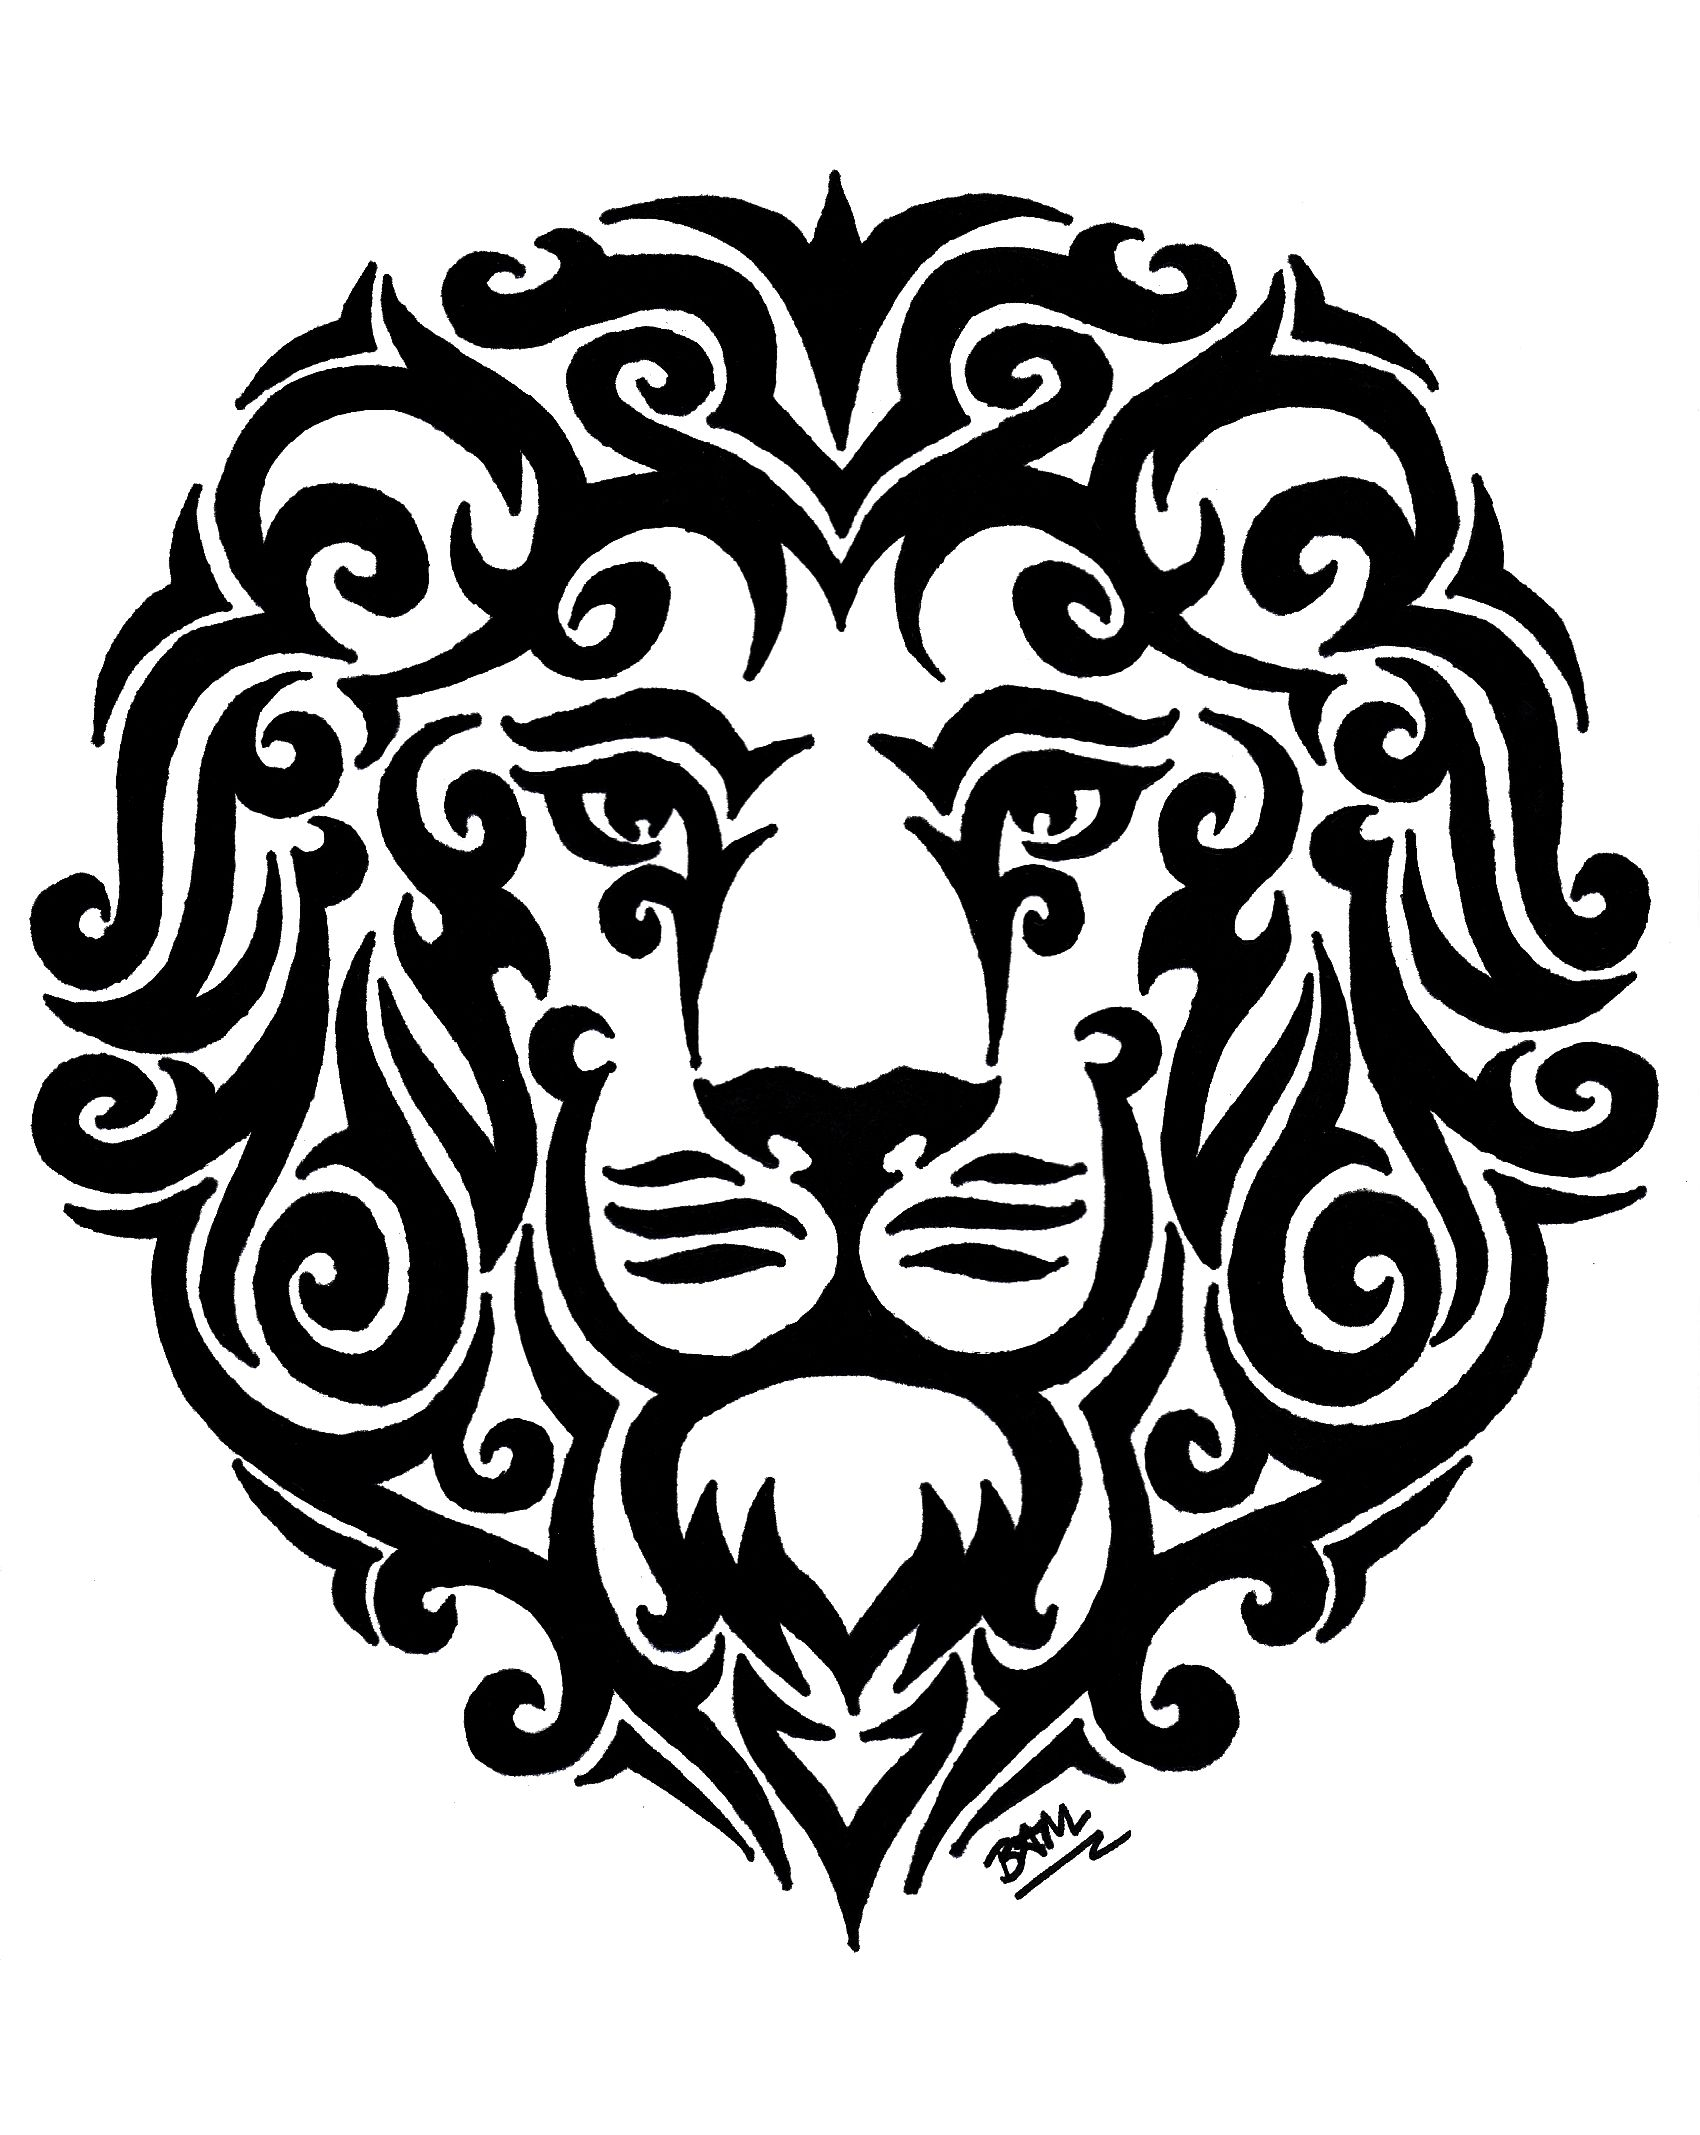 [Tribal Lion] This drawing is available for purchase on